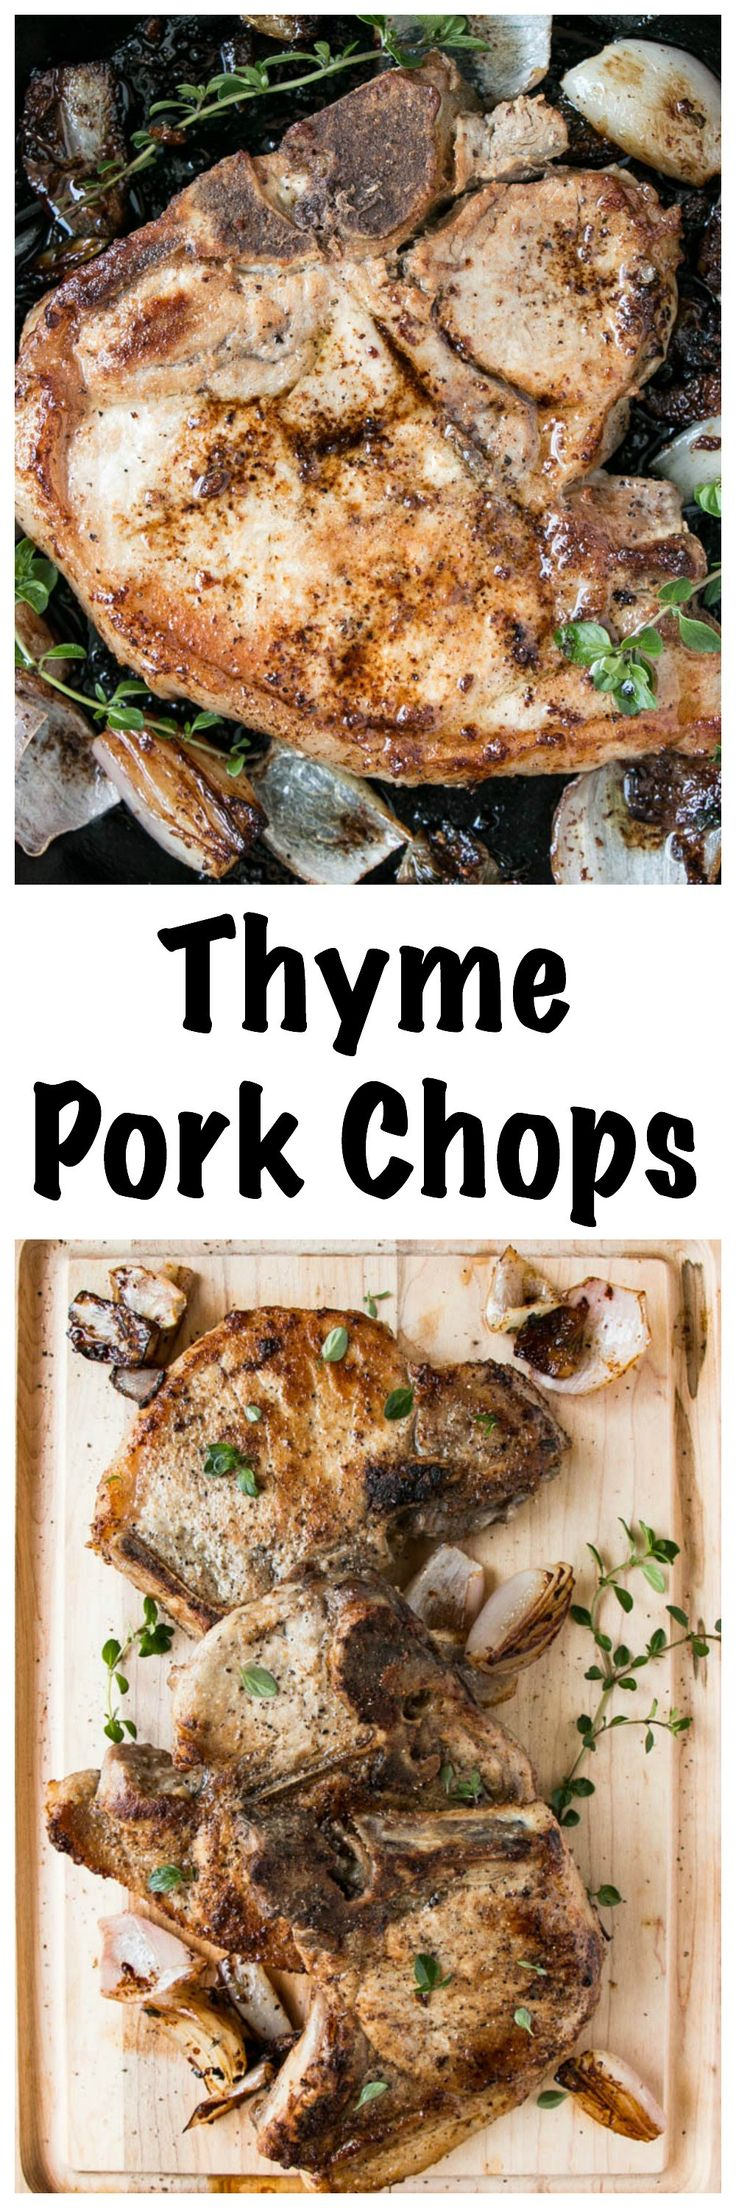 Thyme Pork Chops | My Kitchen Love. Juicy, thick cut pork chops basted in a shallot thyme butter for a mouthwatering result.